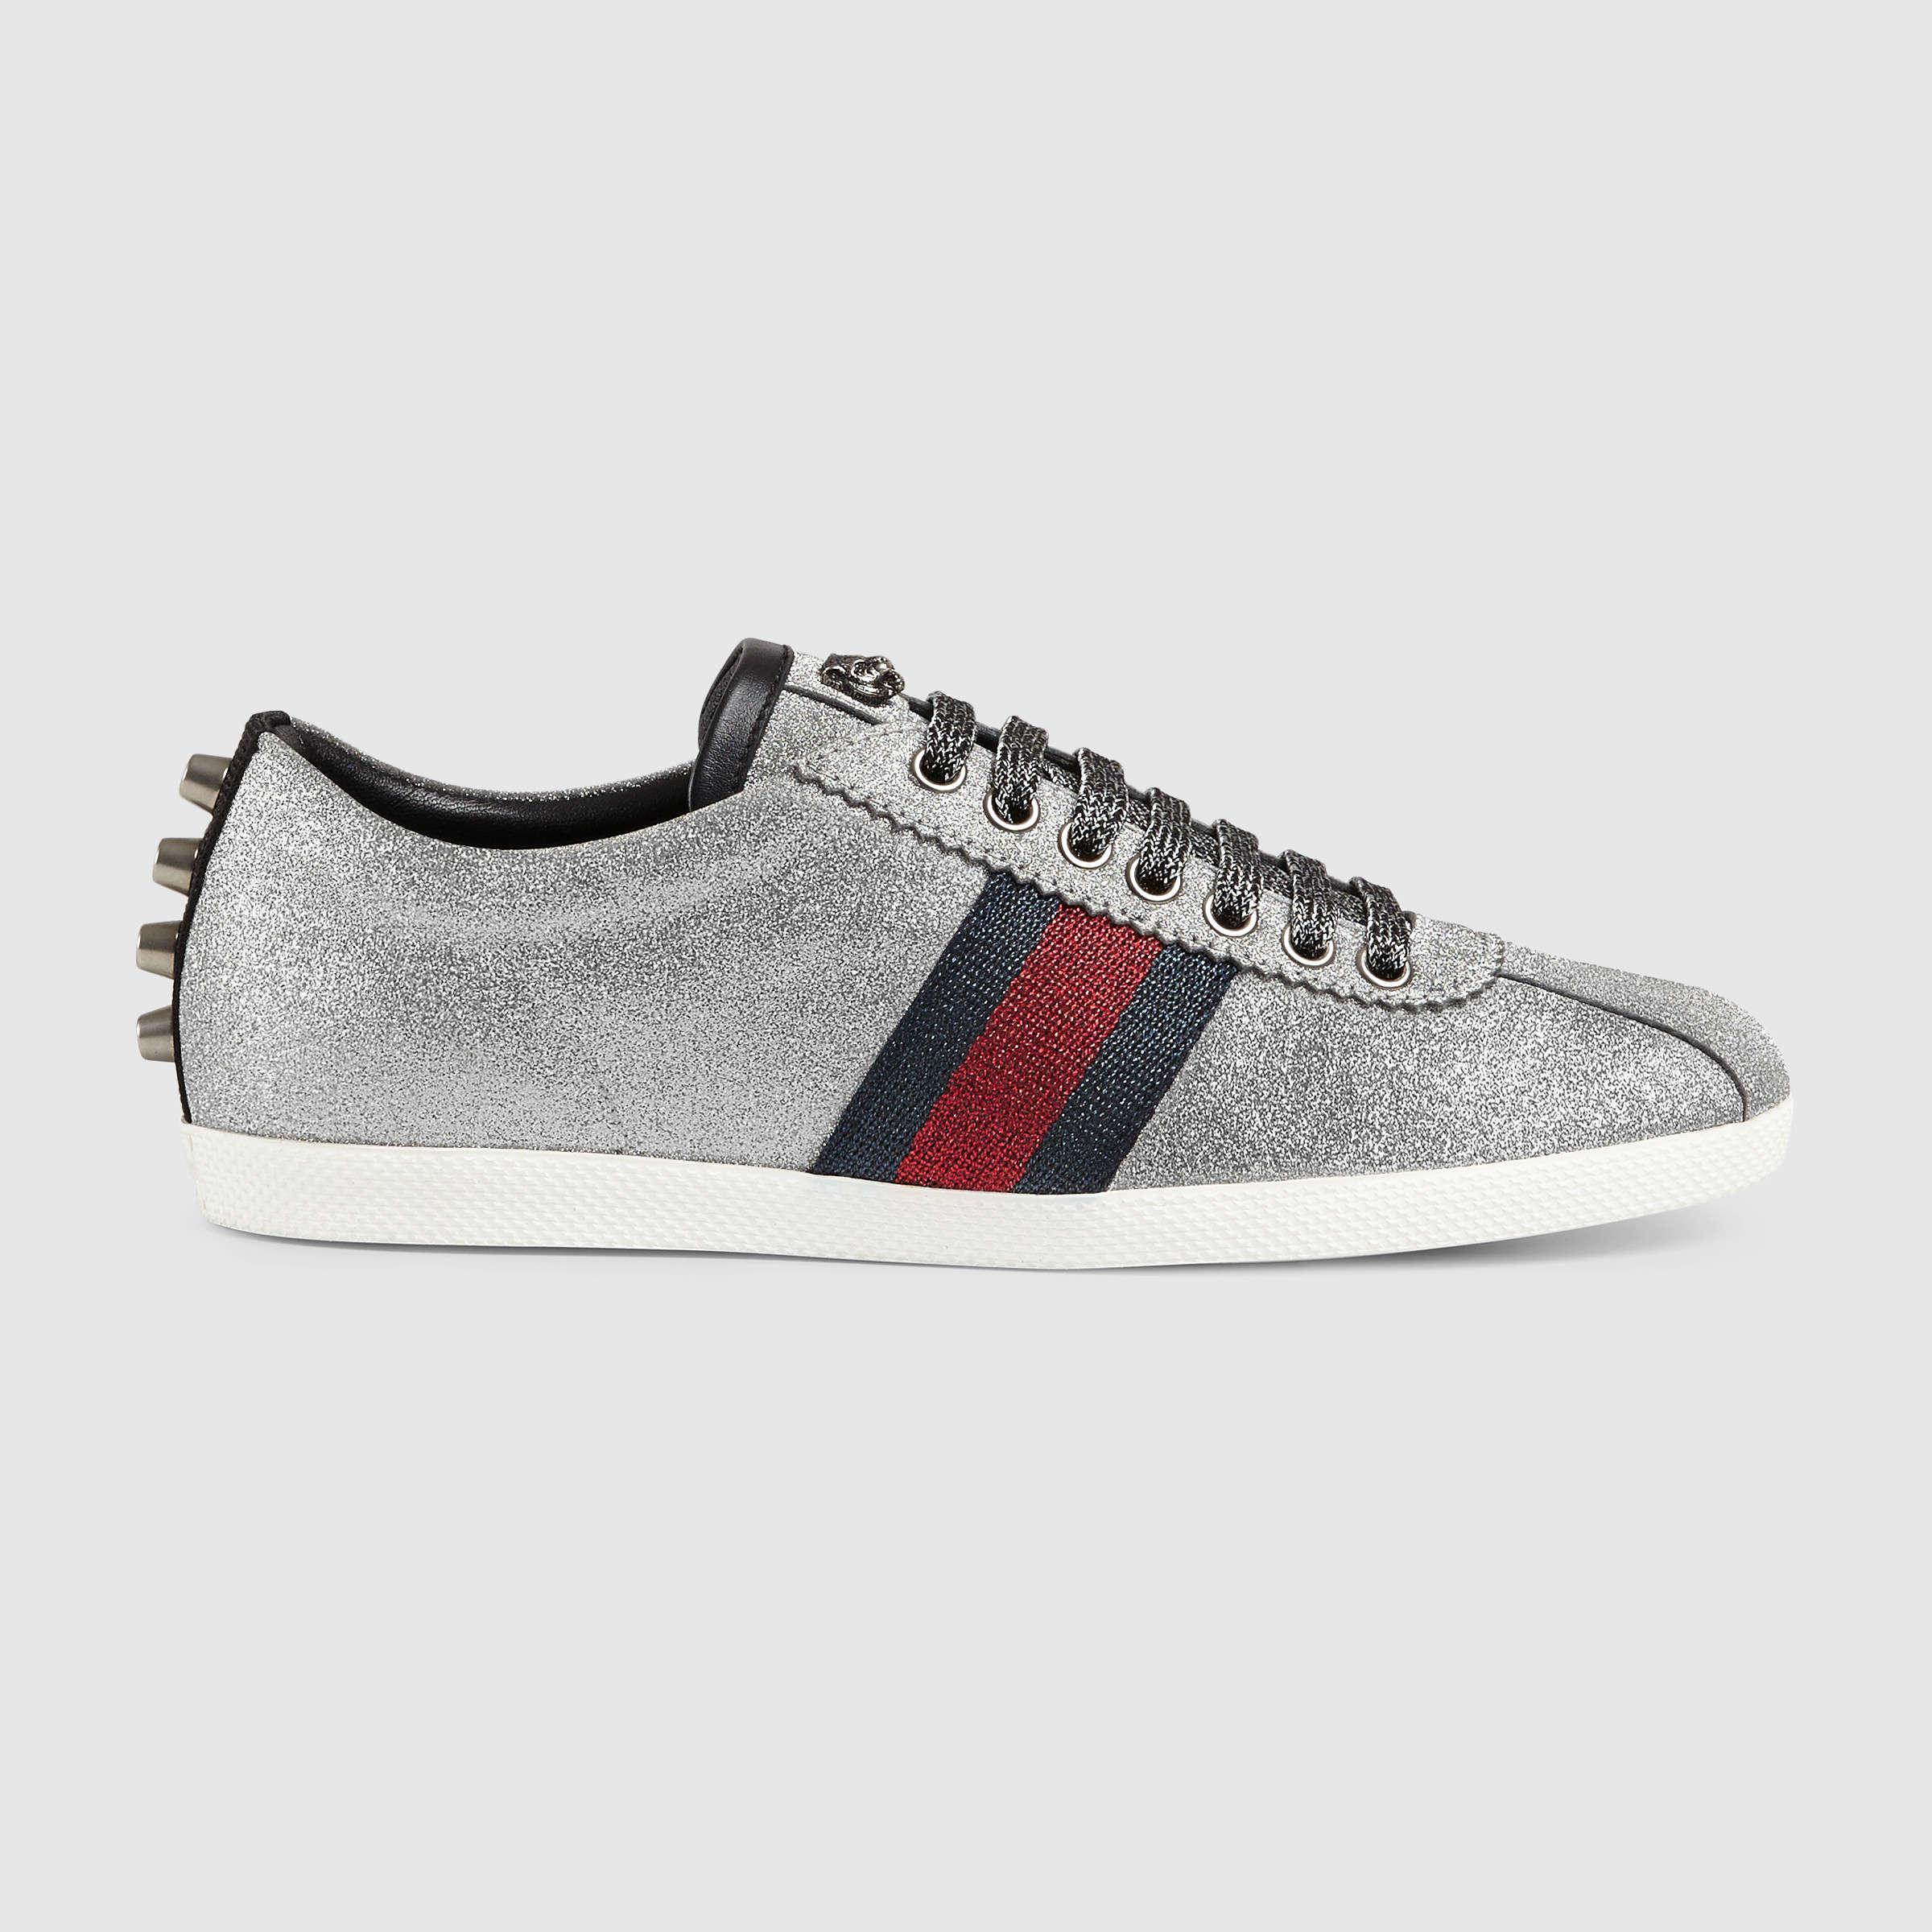 Gucci Gym Shoes For Men